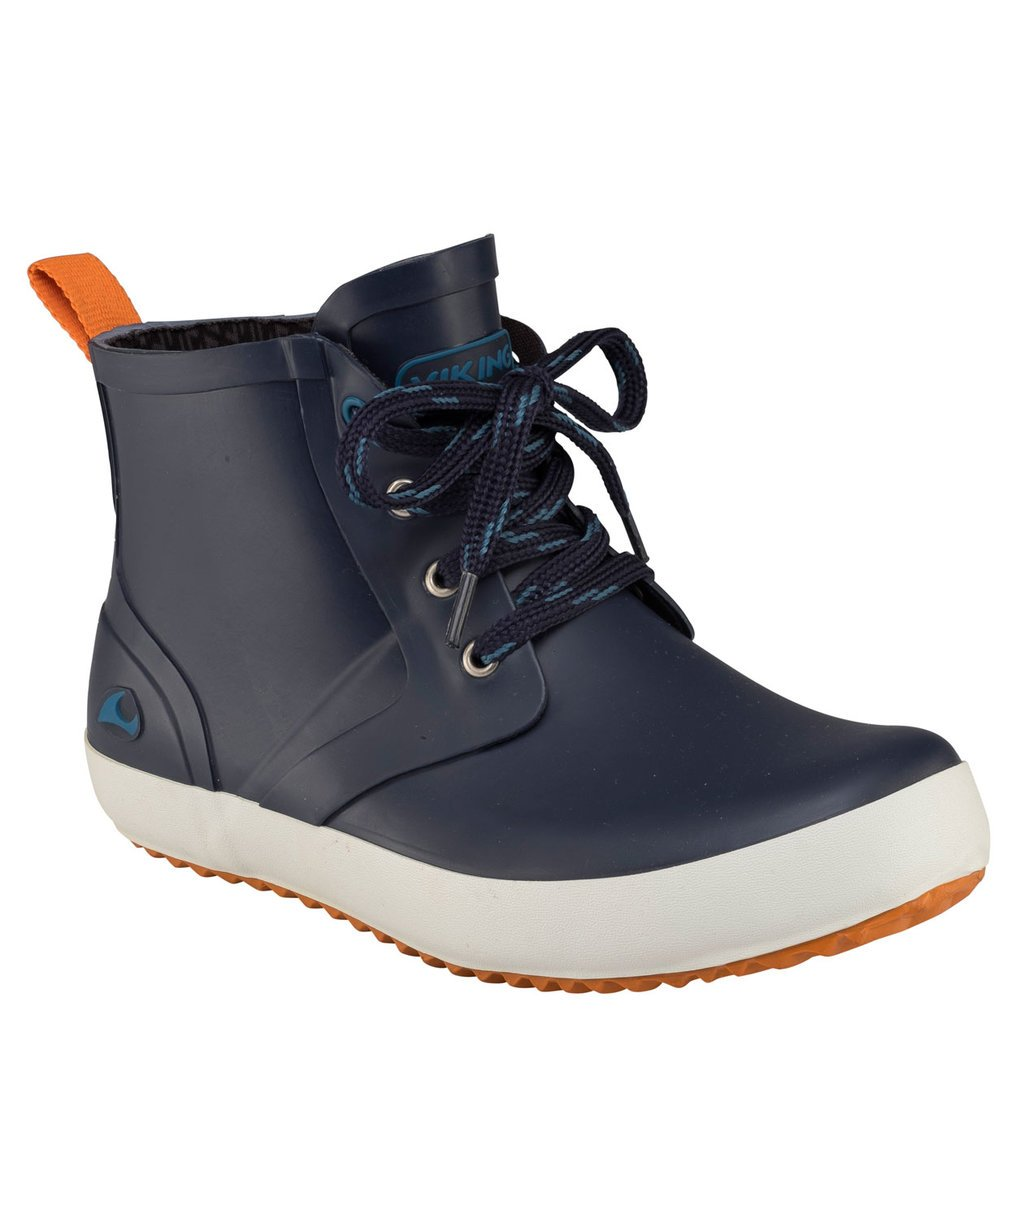 Viking Lillesand Jr gummistövlar, Navy/Orange